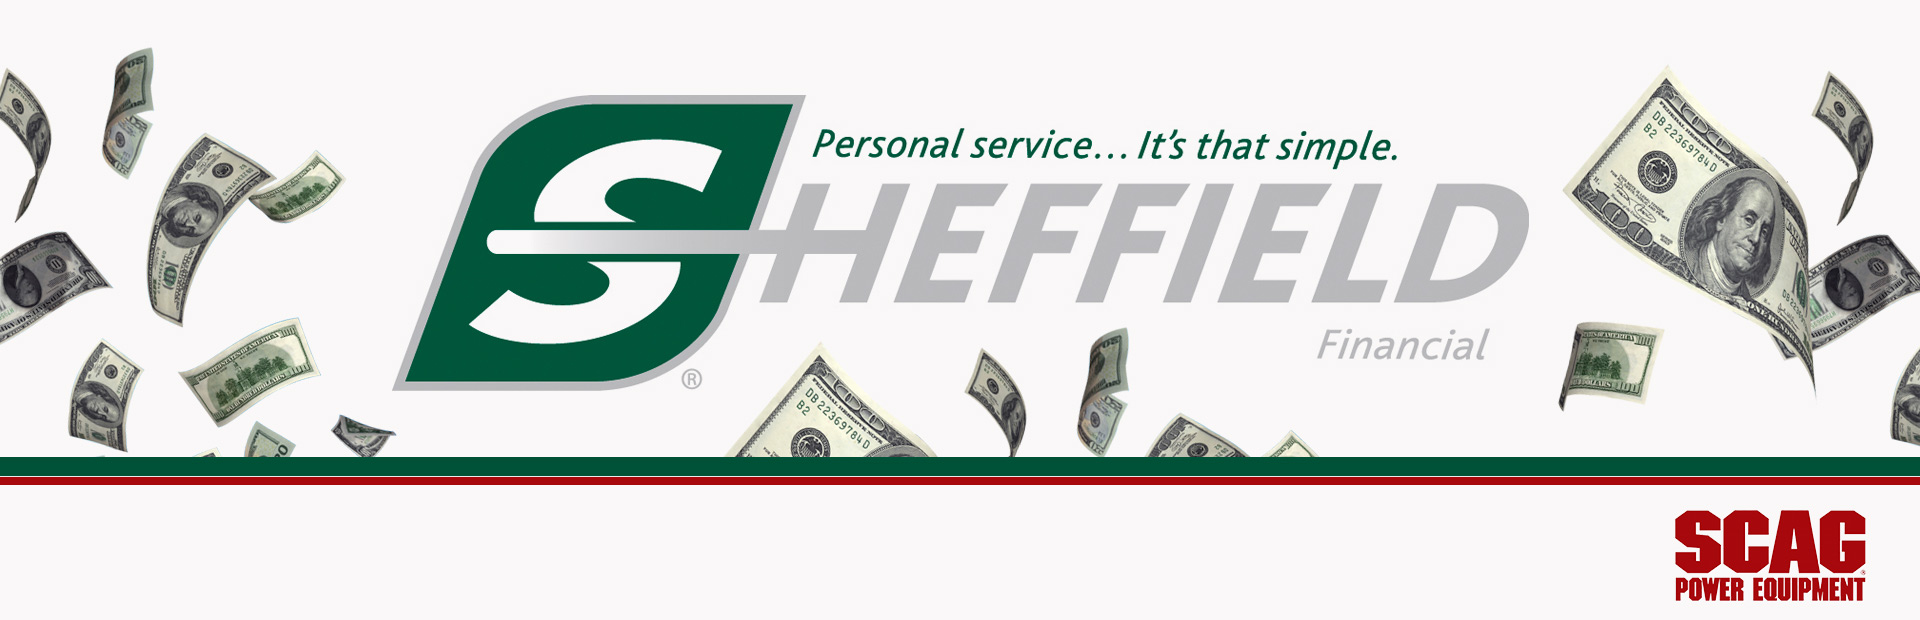 Scag: Sheffield Financing Programs